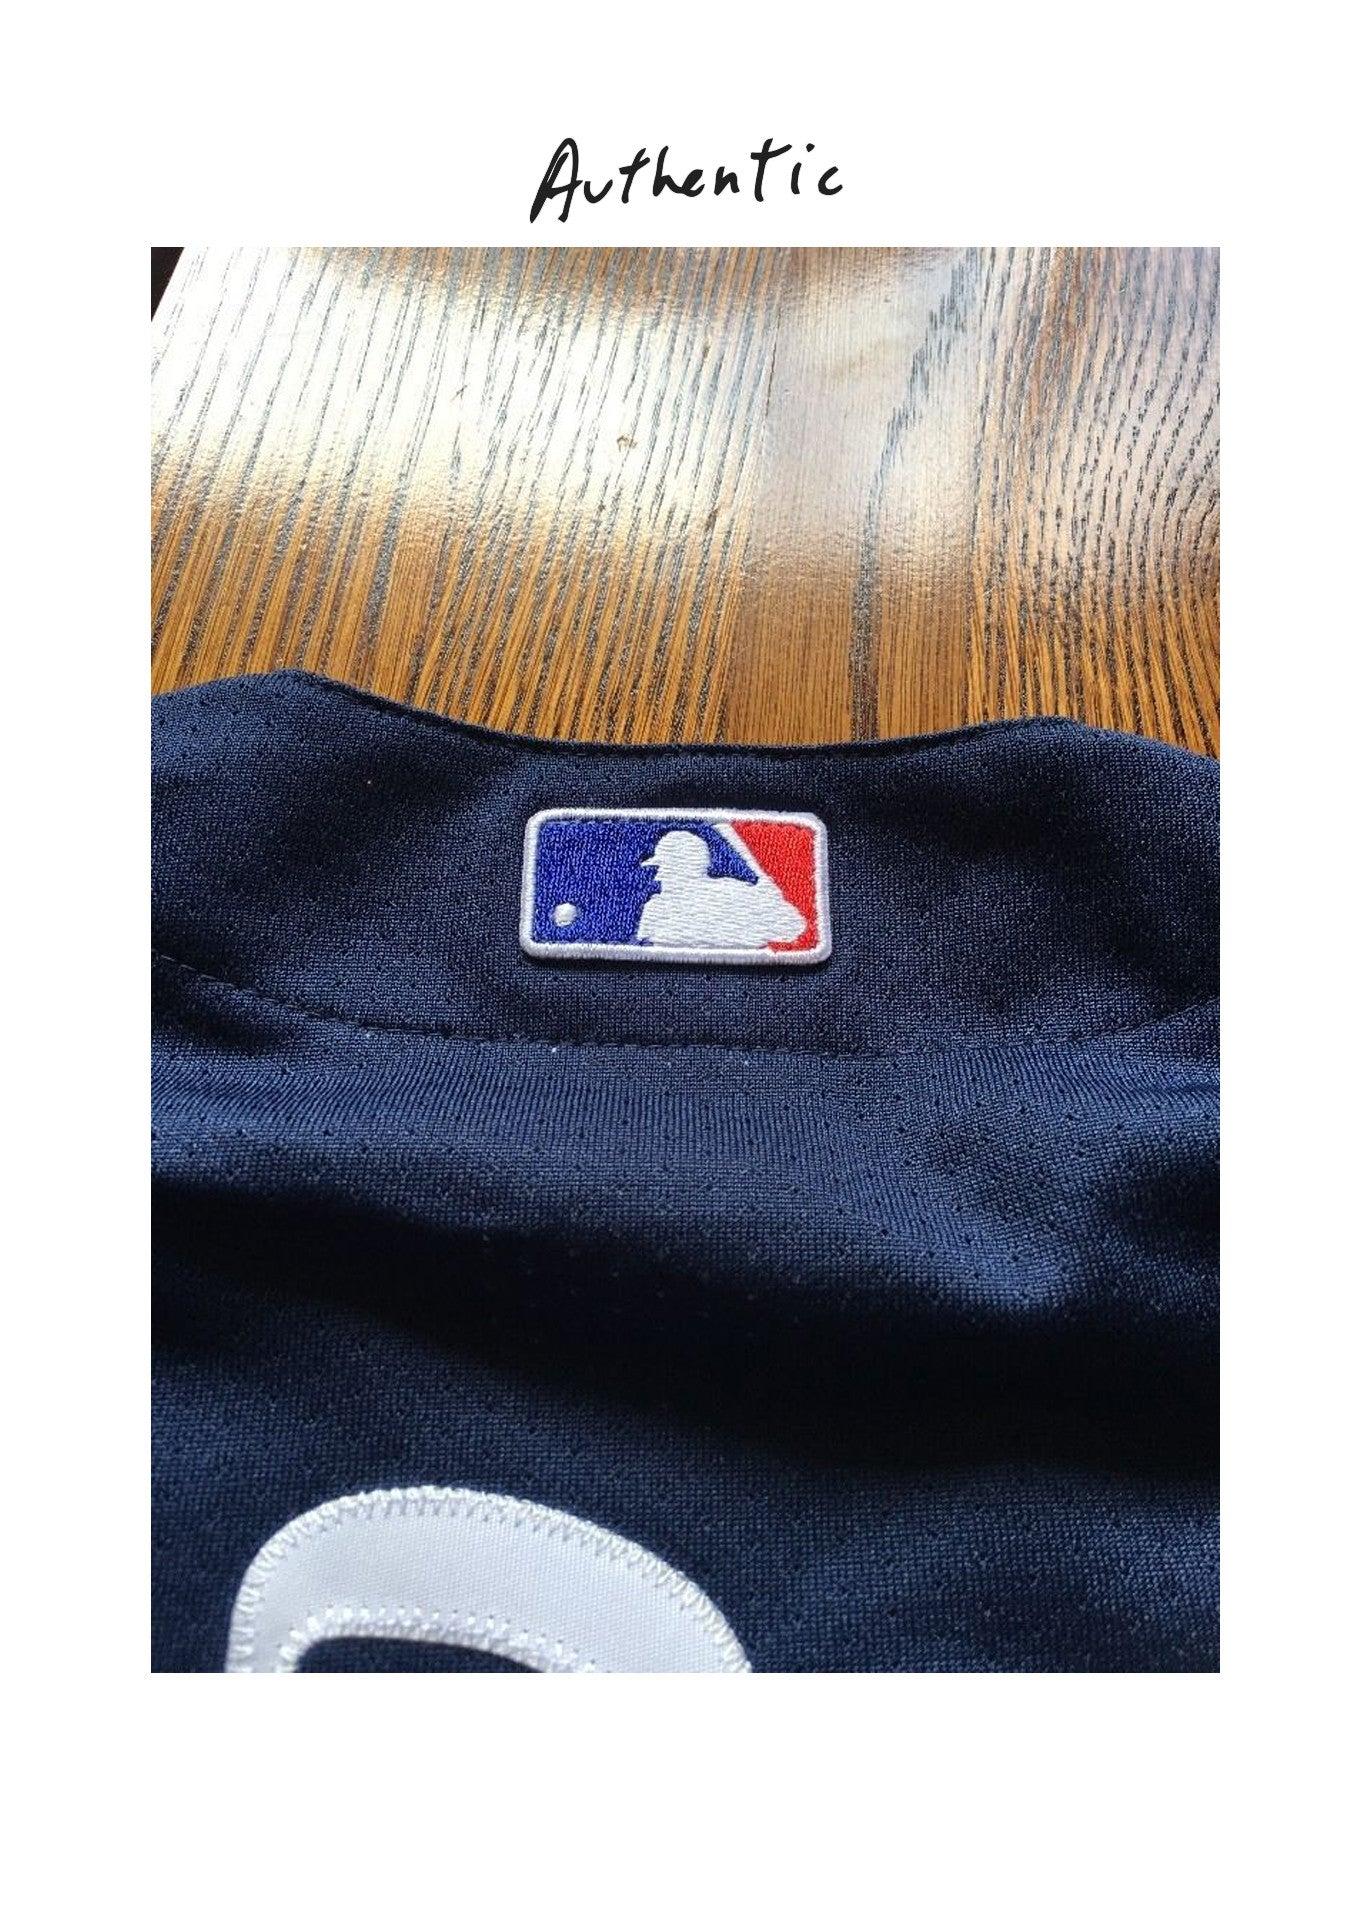 Supreme x New York Yankees Majestic Baseball Jersey  (S/S 2015)